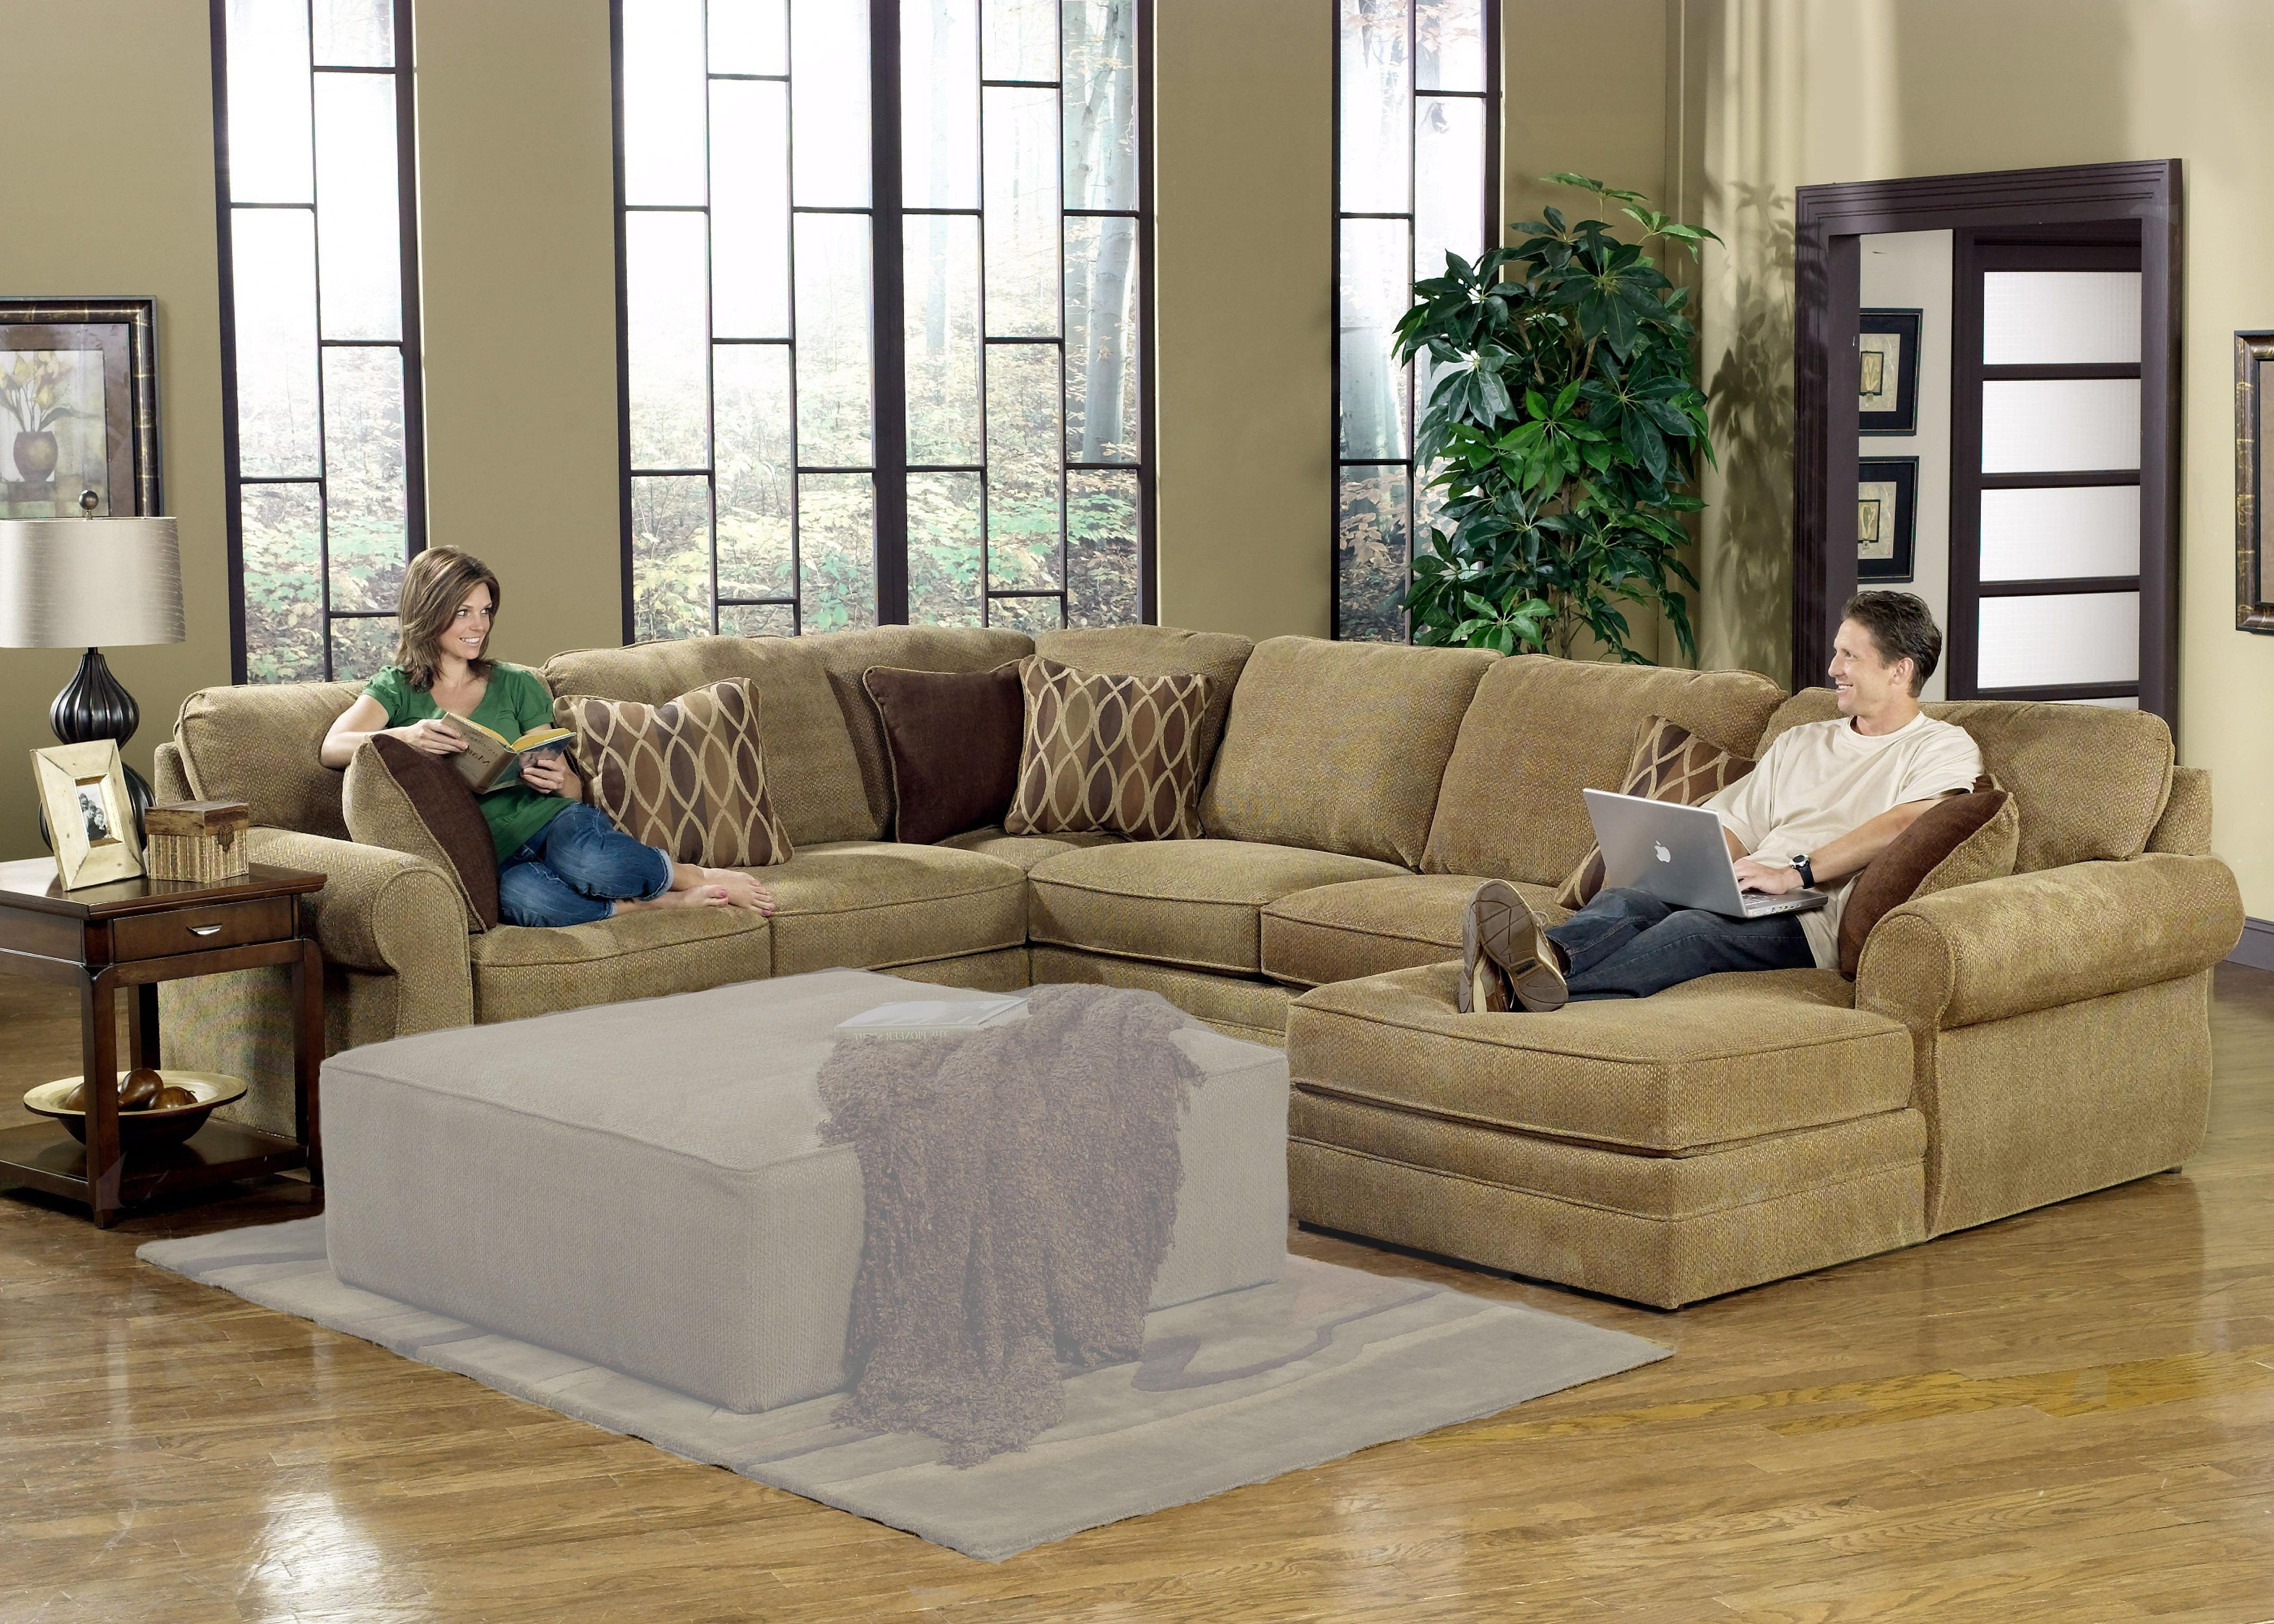 Oakville Sectional Sofas Regarding Most Recent U Shaped Sectional Sofas Canada (View 14 of 20)